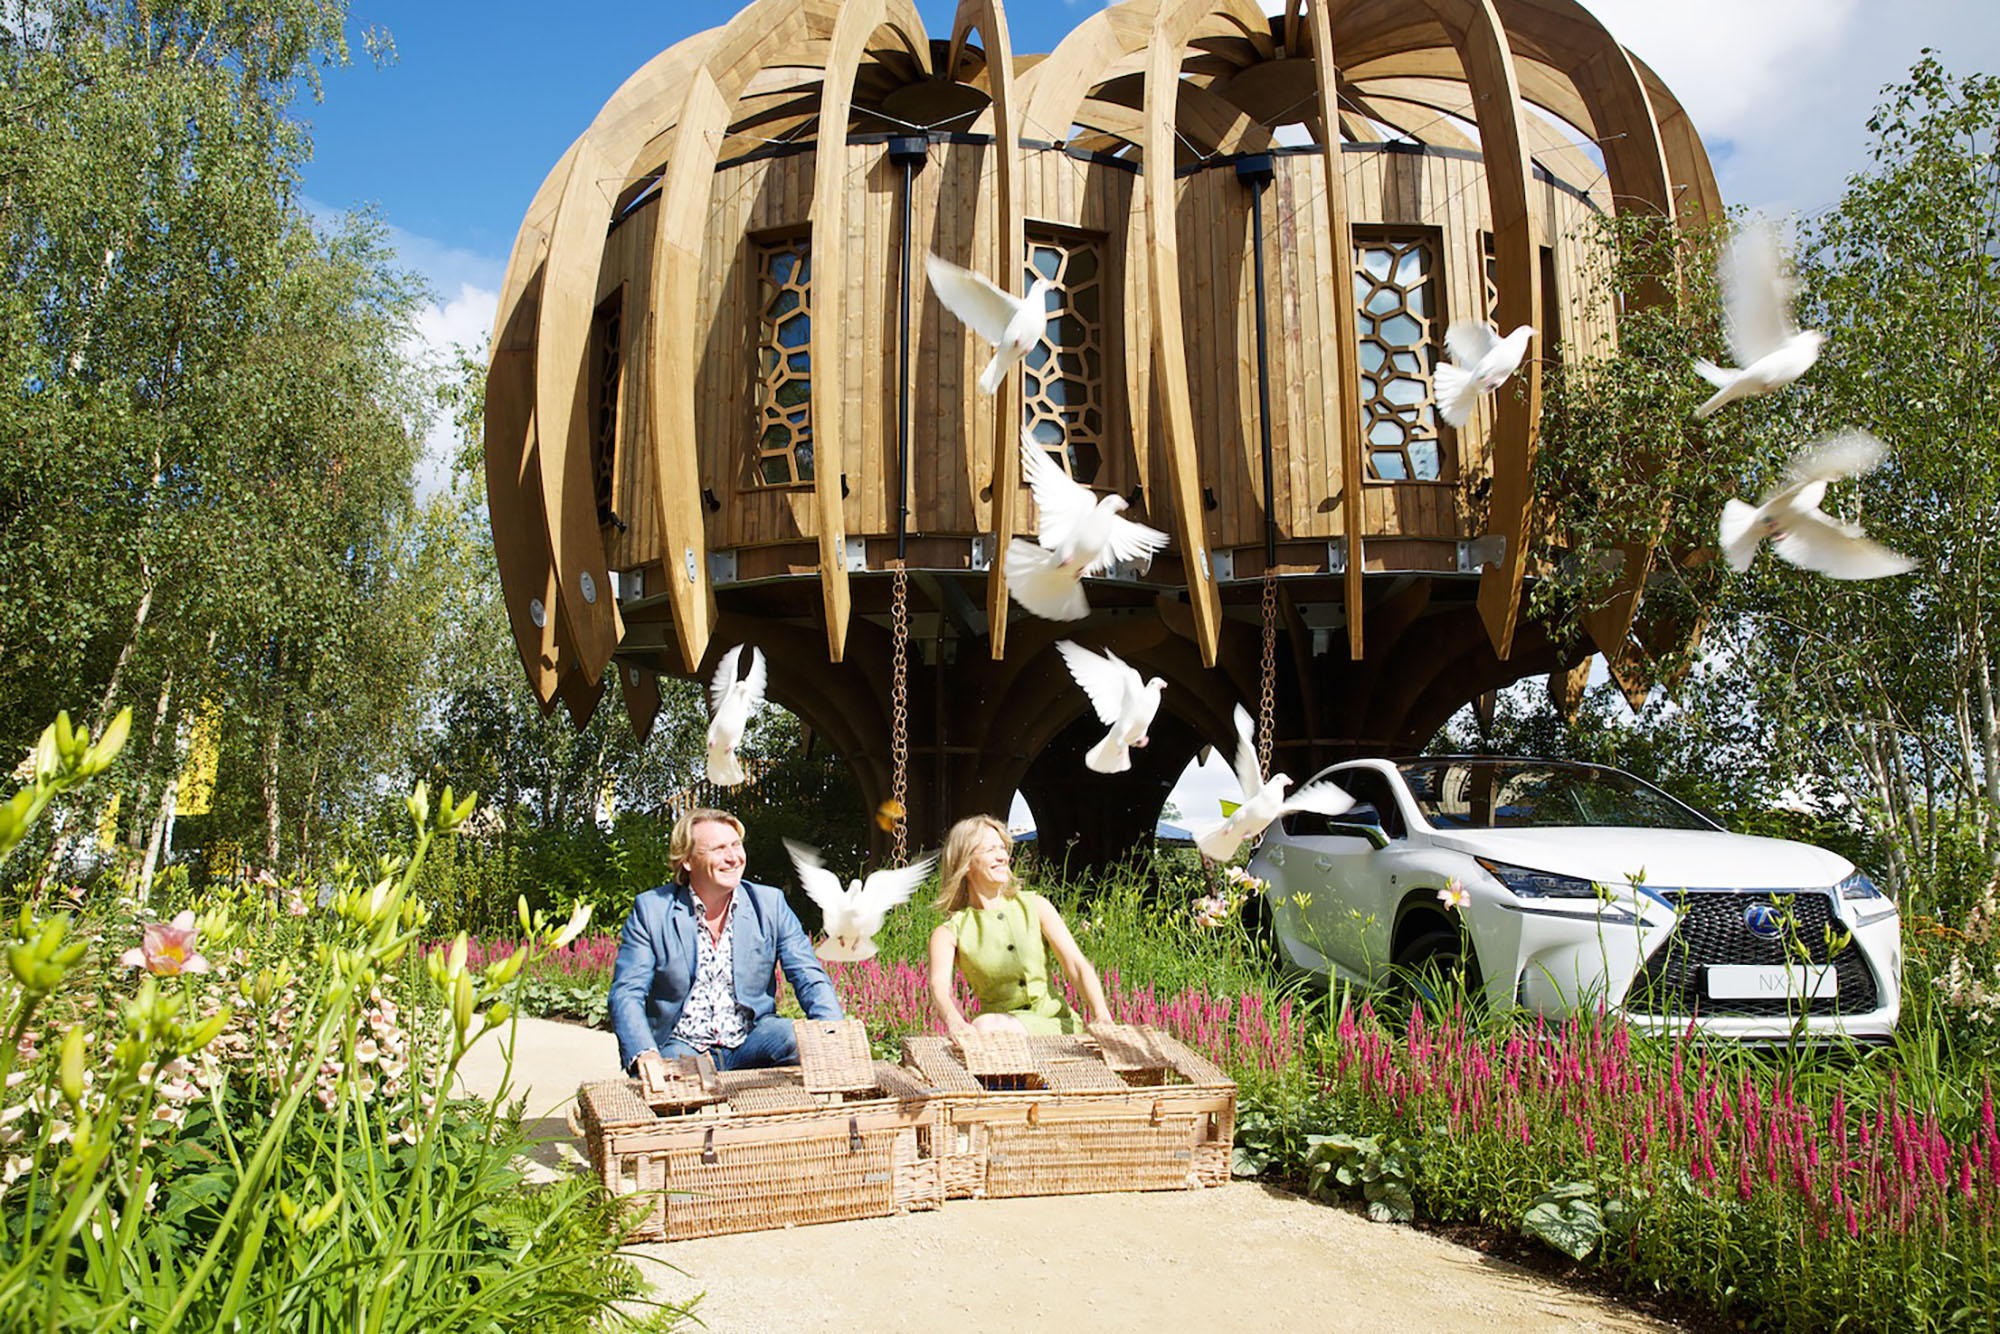 The Quiet Mark Treehouse Garden By John Lewis Blue Forest